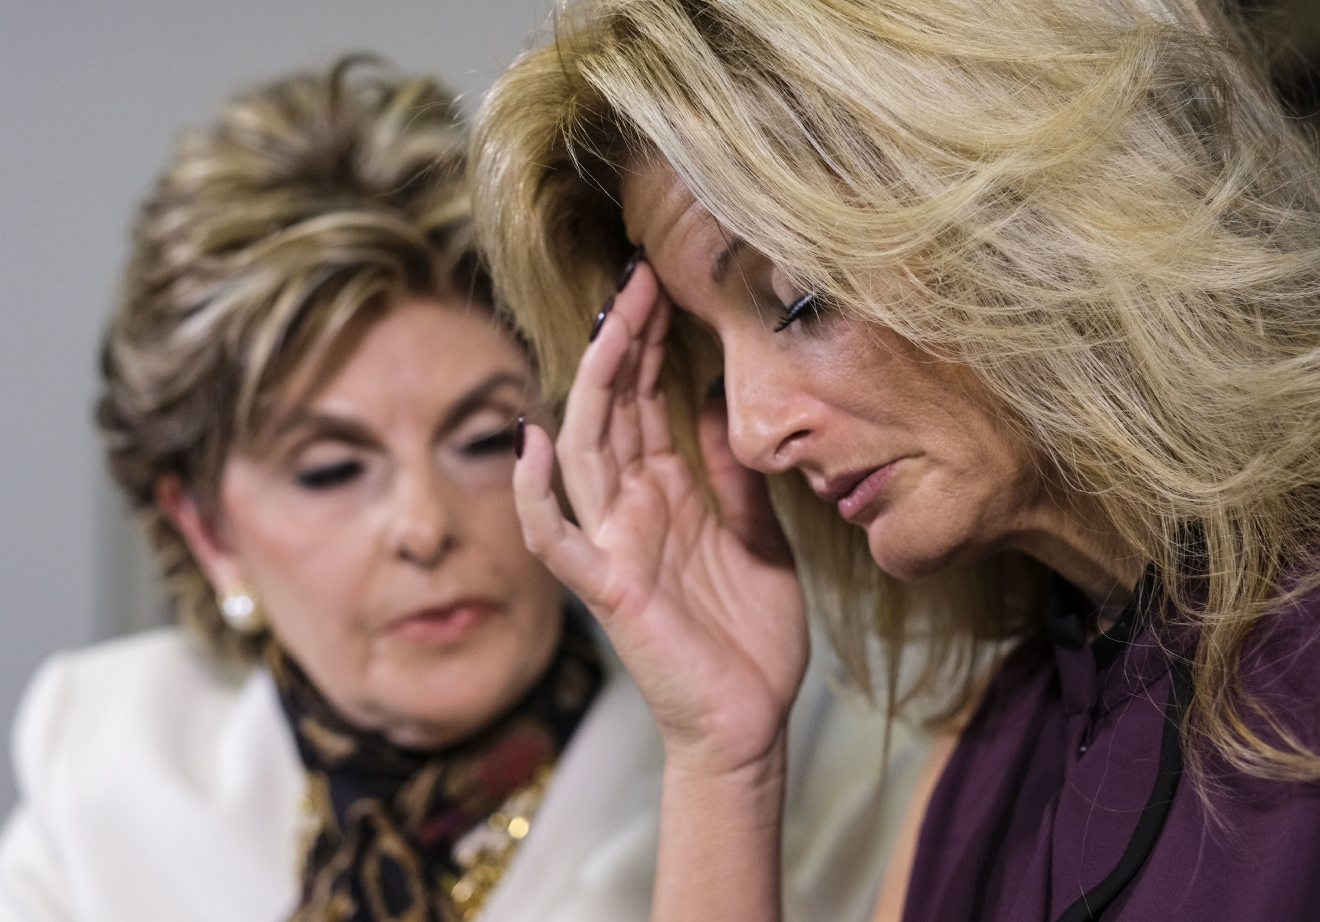 Summer Zervos, right, reads a statement alongside her attorney Gloria Allred during a news conference in Los Angeles, Friday Oct. 14, 2016. (AP Photo/Ringo H.W. Chiu)